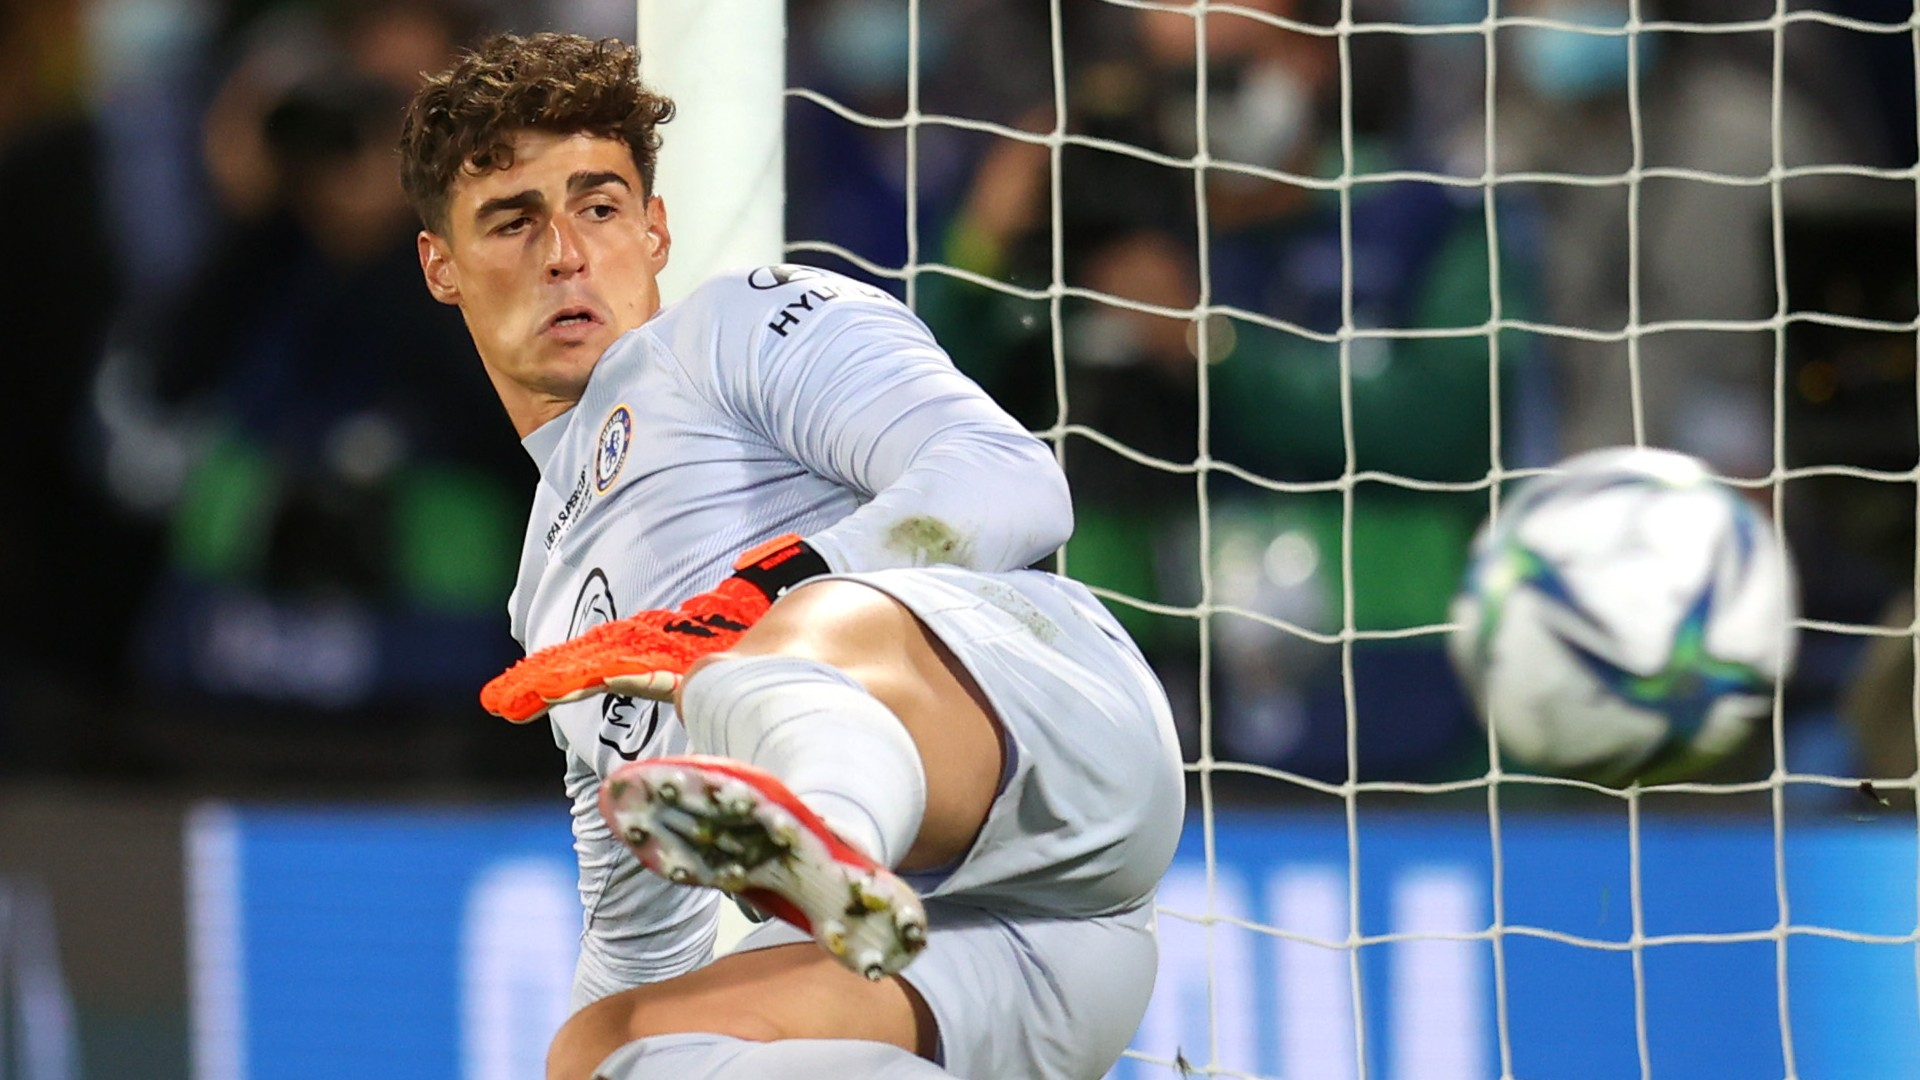 Mendy was happy to make way for Kepa in UEFA Super Cup penalty shootout, says Chelsea boss Tuchel